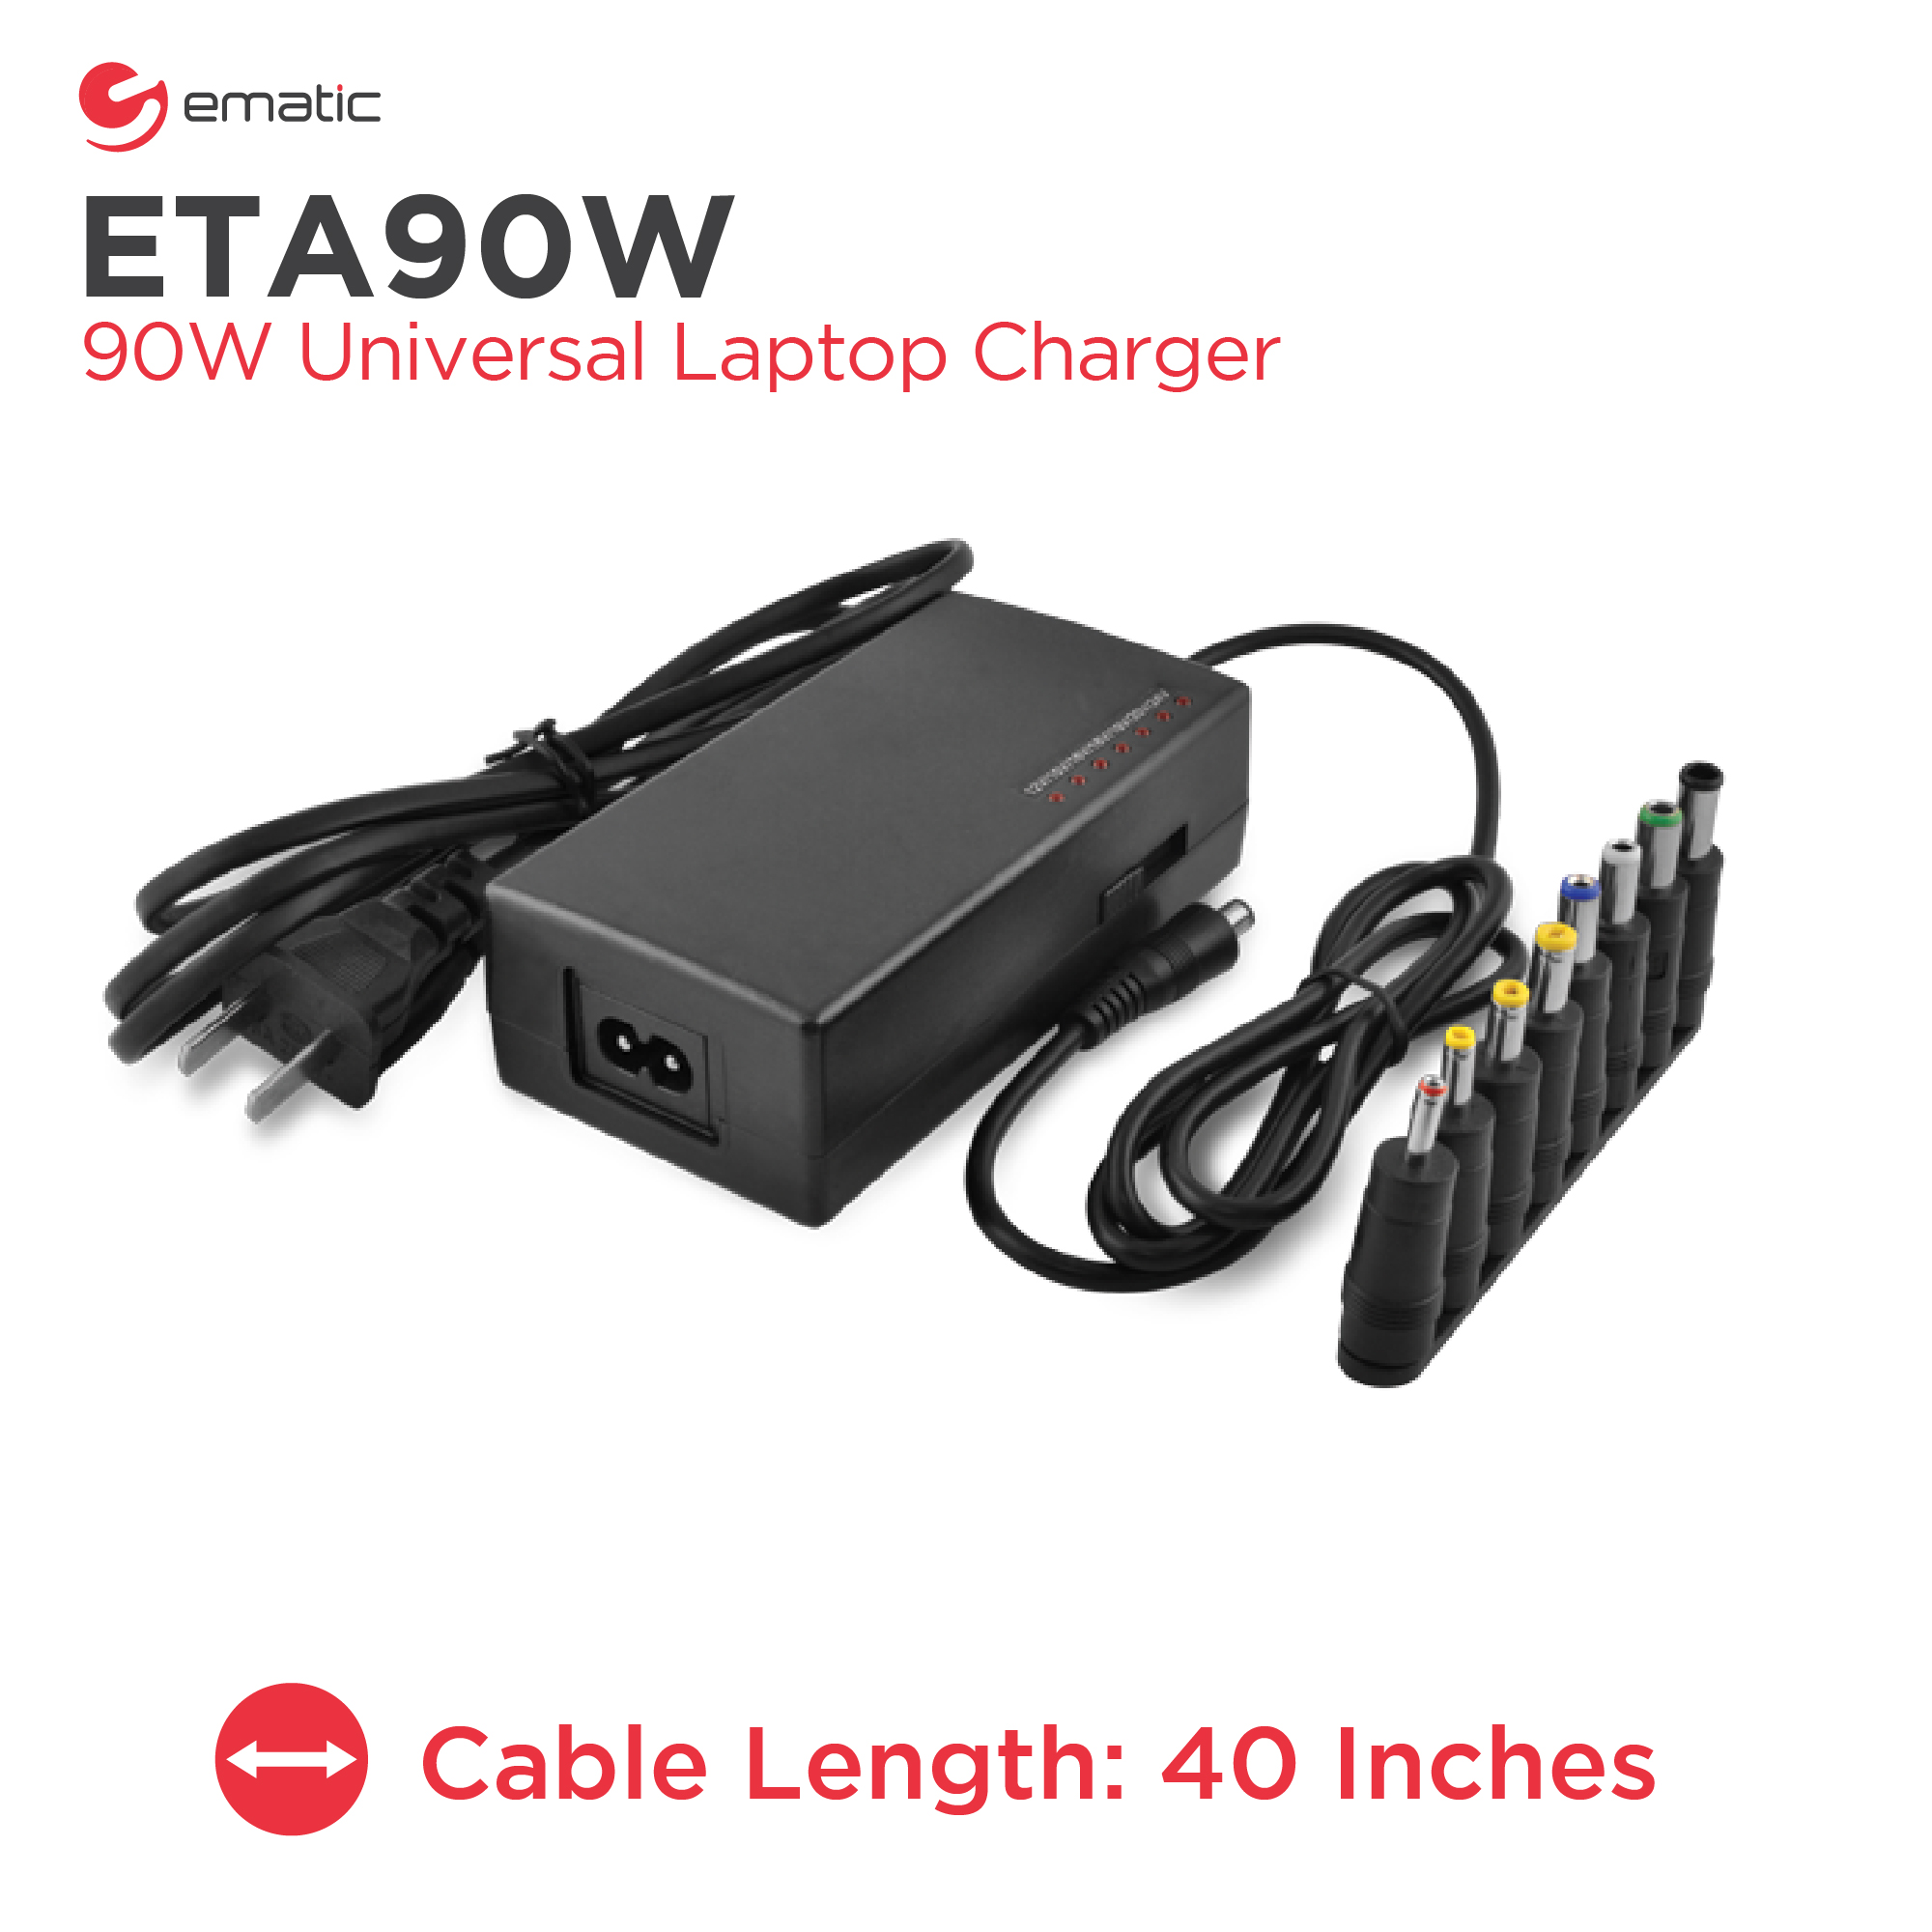 Ematic 90W Universal Laptop Charger